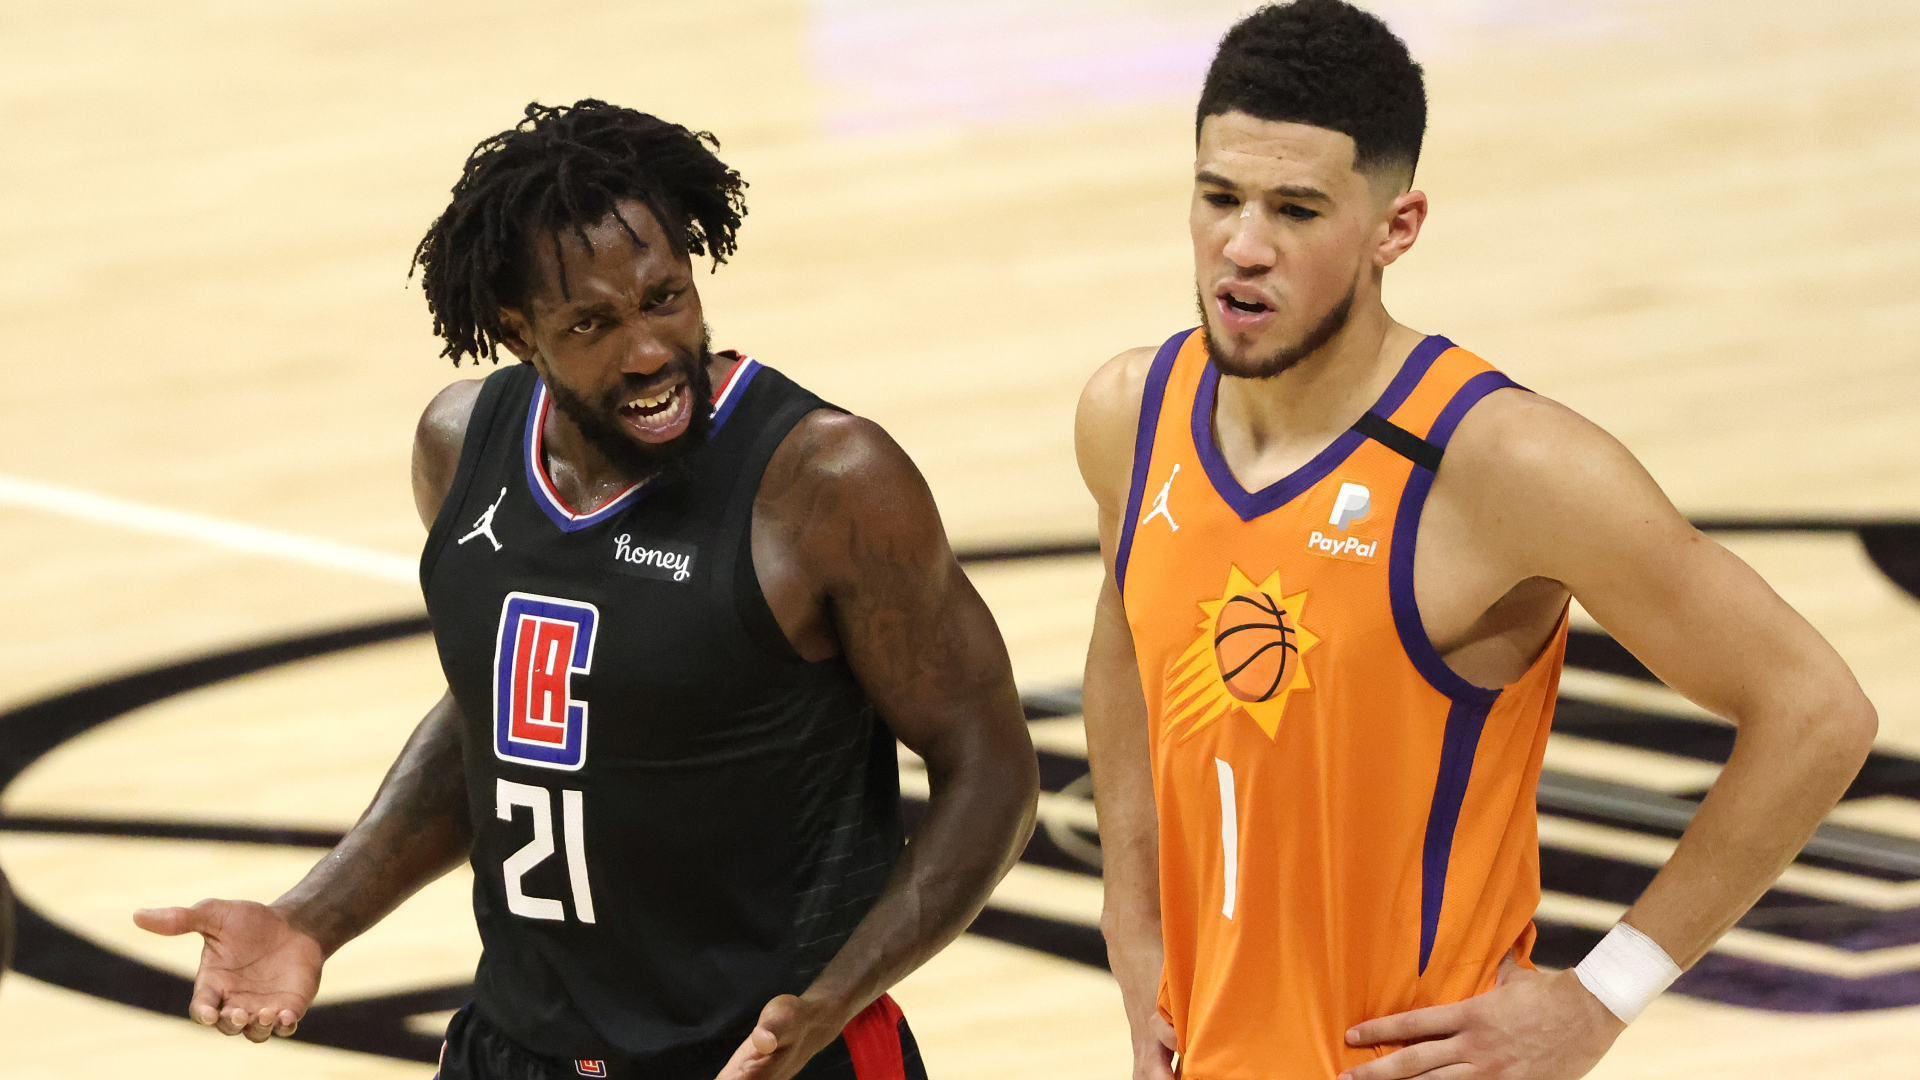 Patrick Beverley had been traded by the Los Angeles Clippers on Sunday and has moved again to the Minnesota Timberwolves.